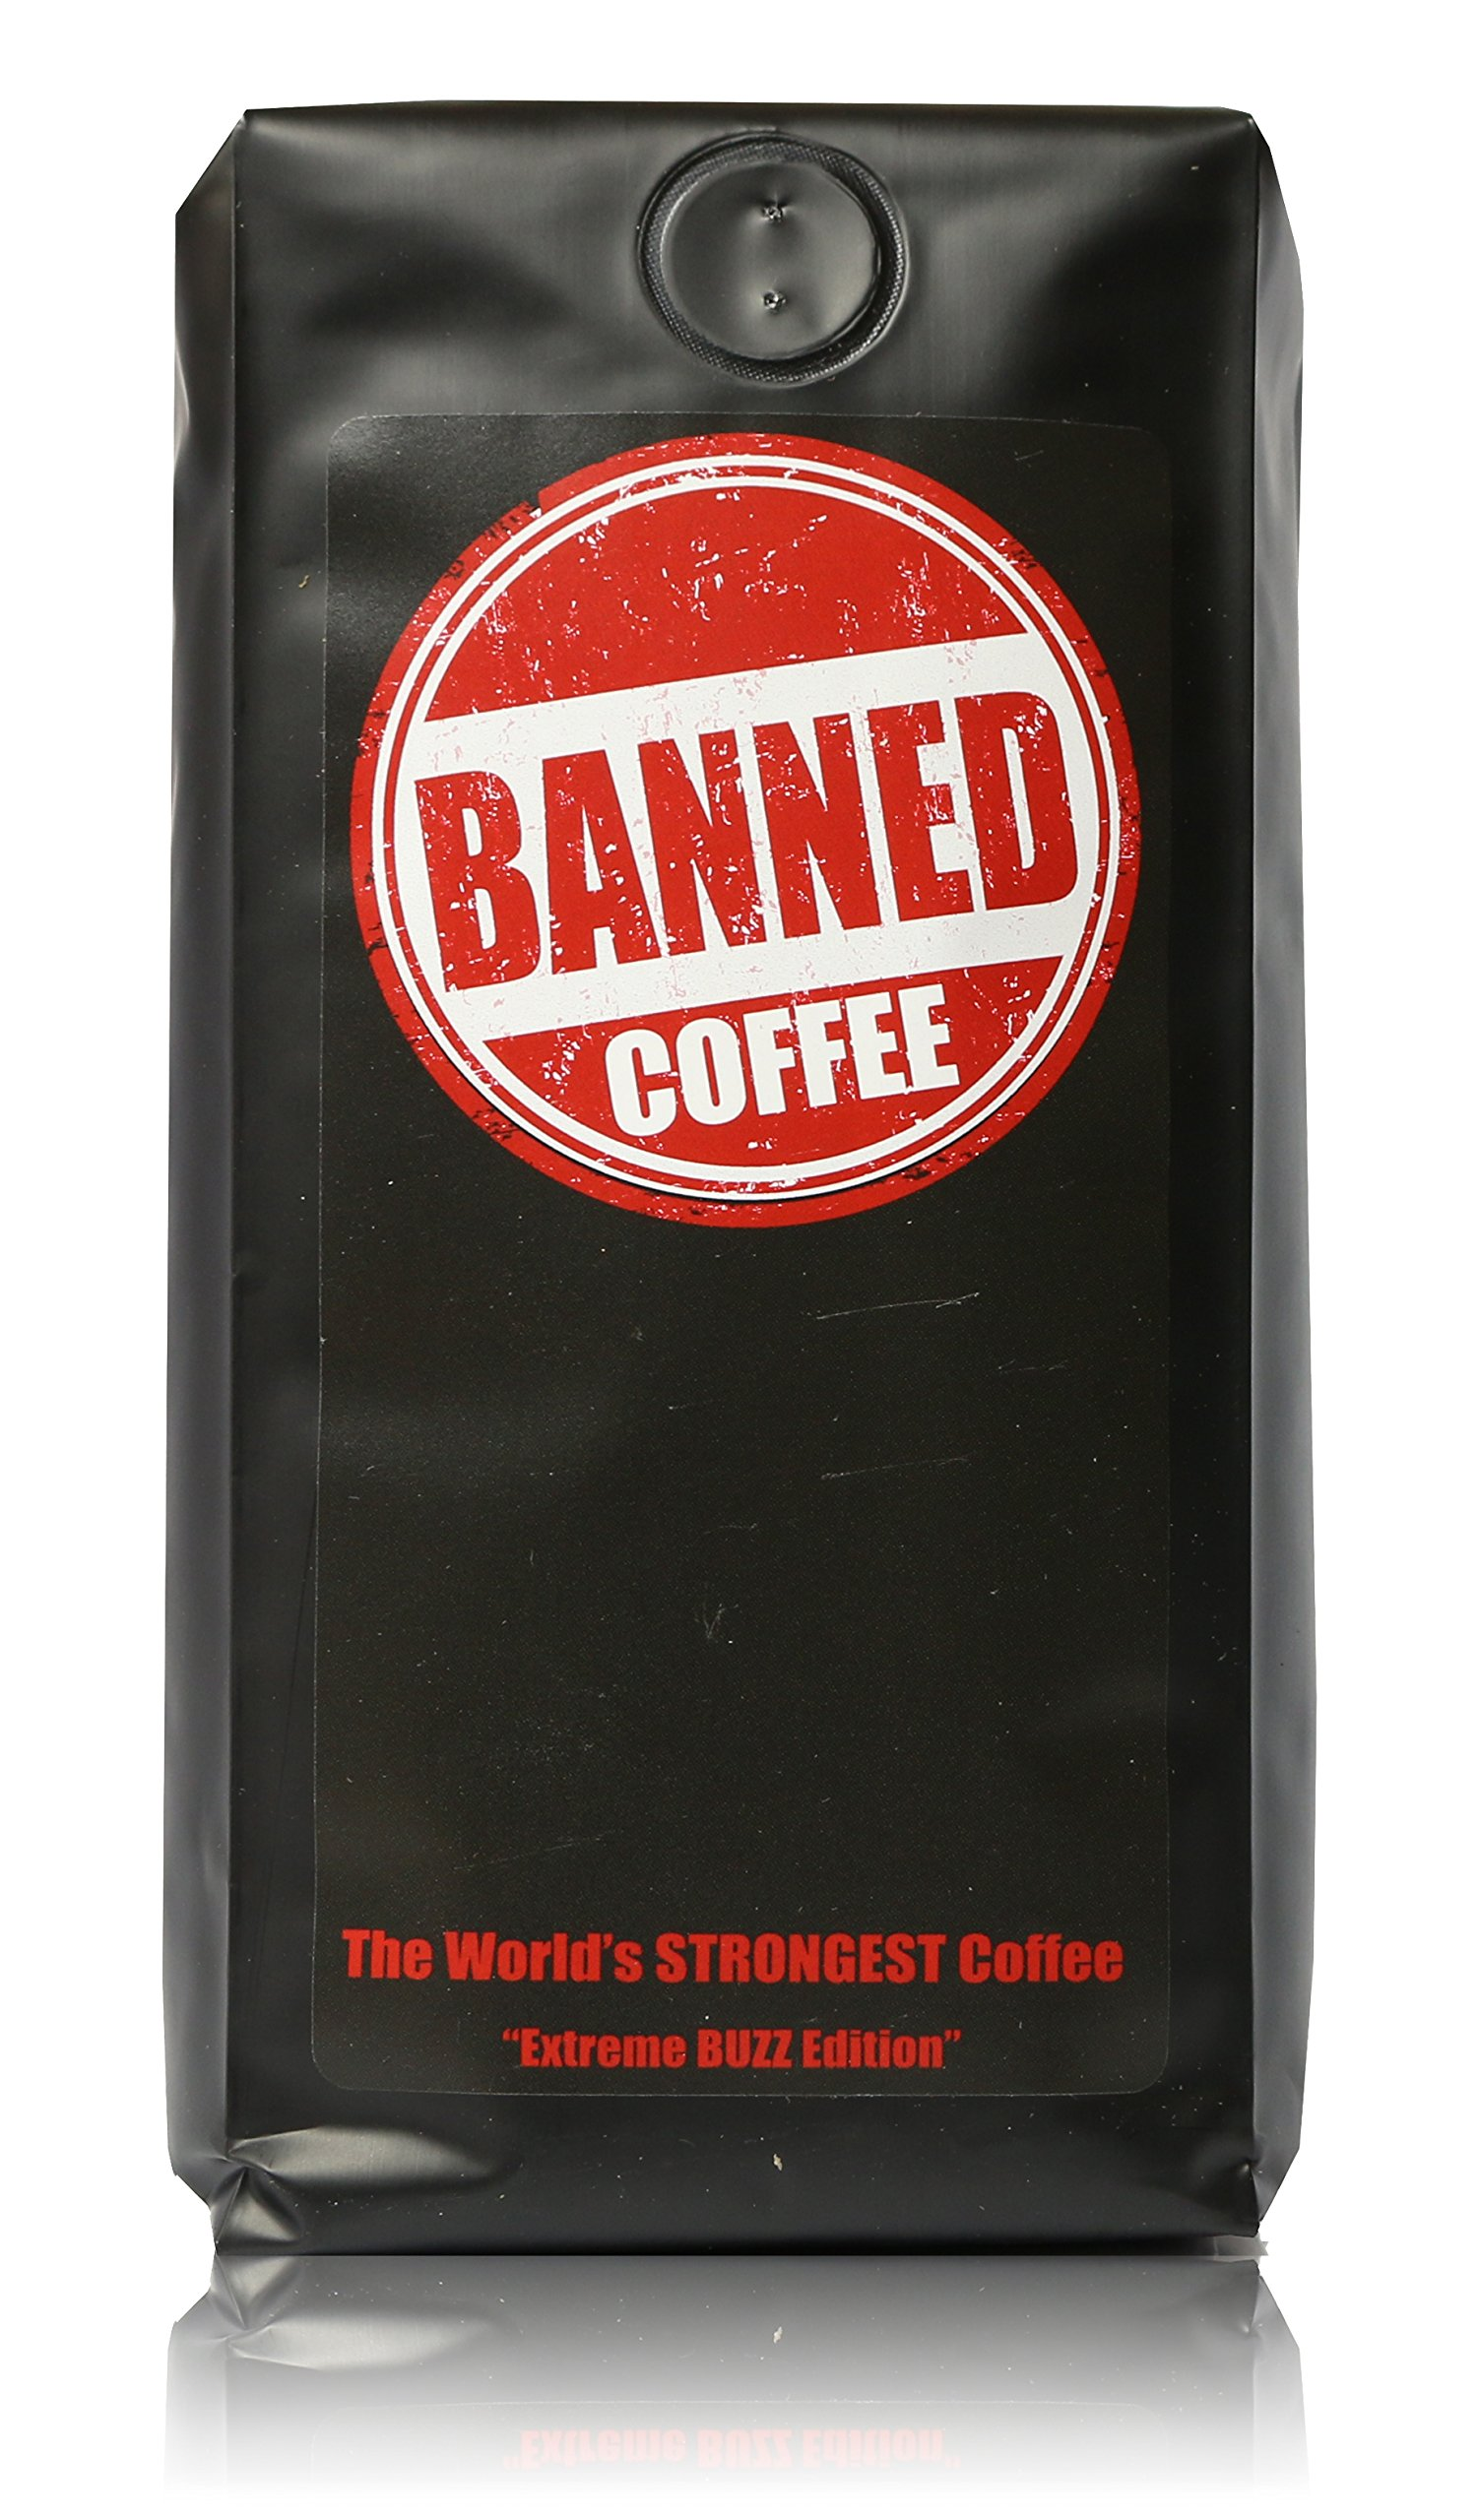 Banned Coffee Whole Bean World's most delicious Strongest Coffee - Our Best Medium Dark Roast - 1 LB Bag